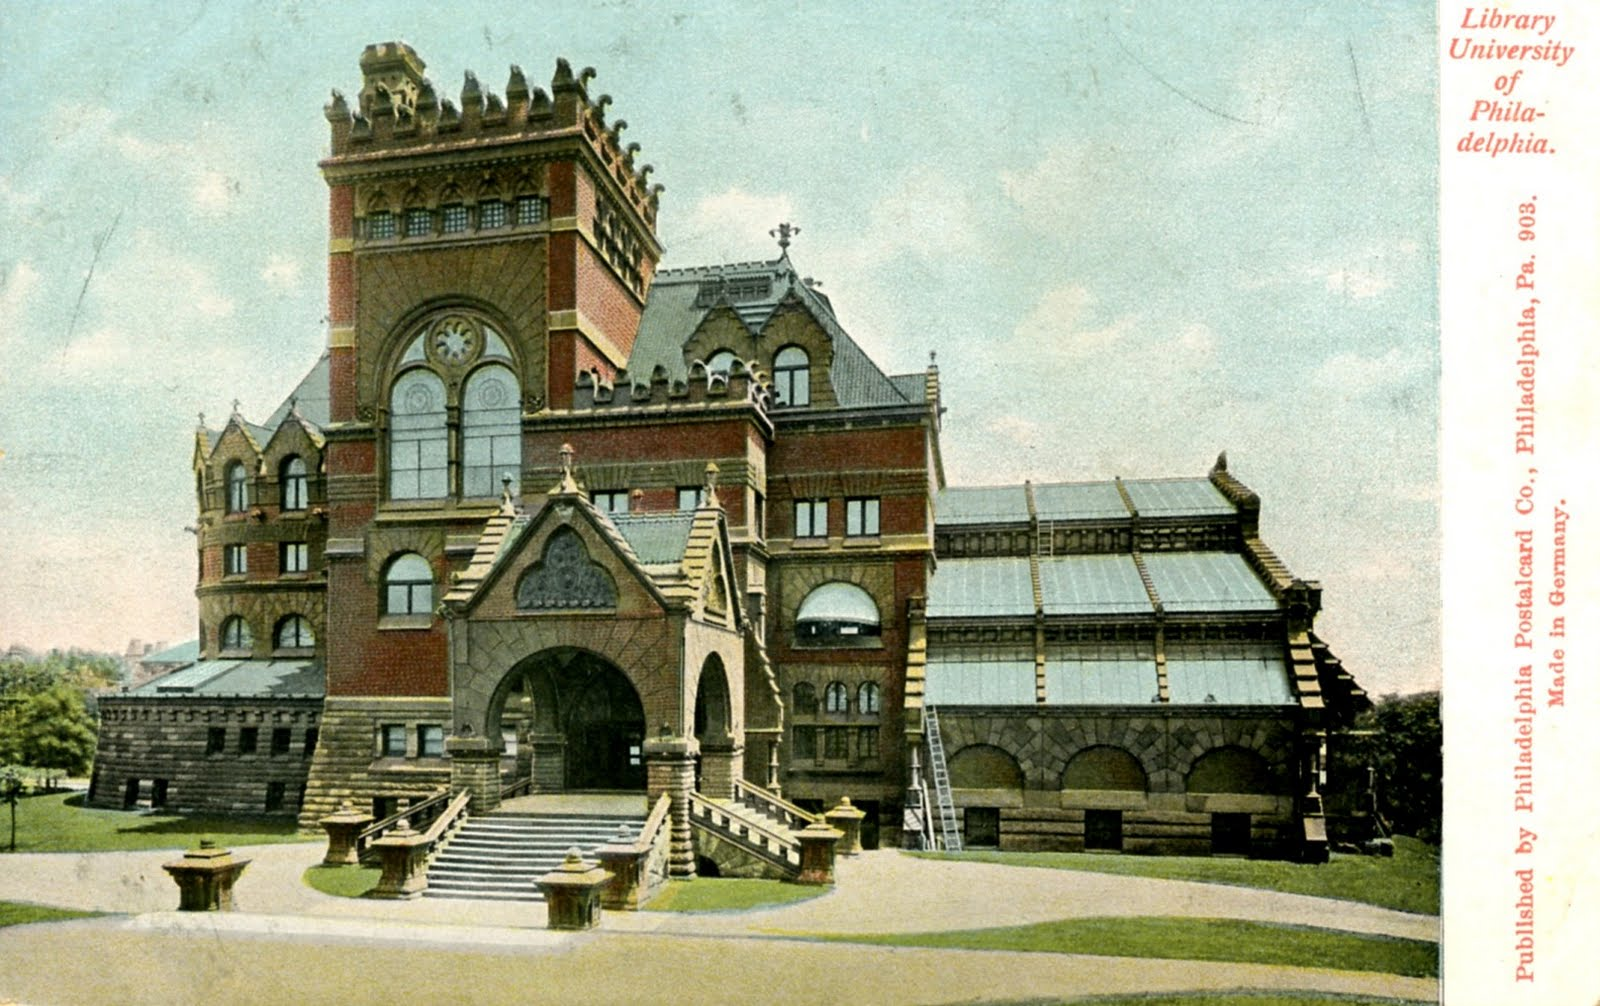 Postcard of the University of Pennsylvania Library designed by Frank Furness